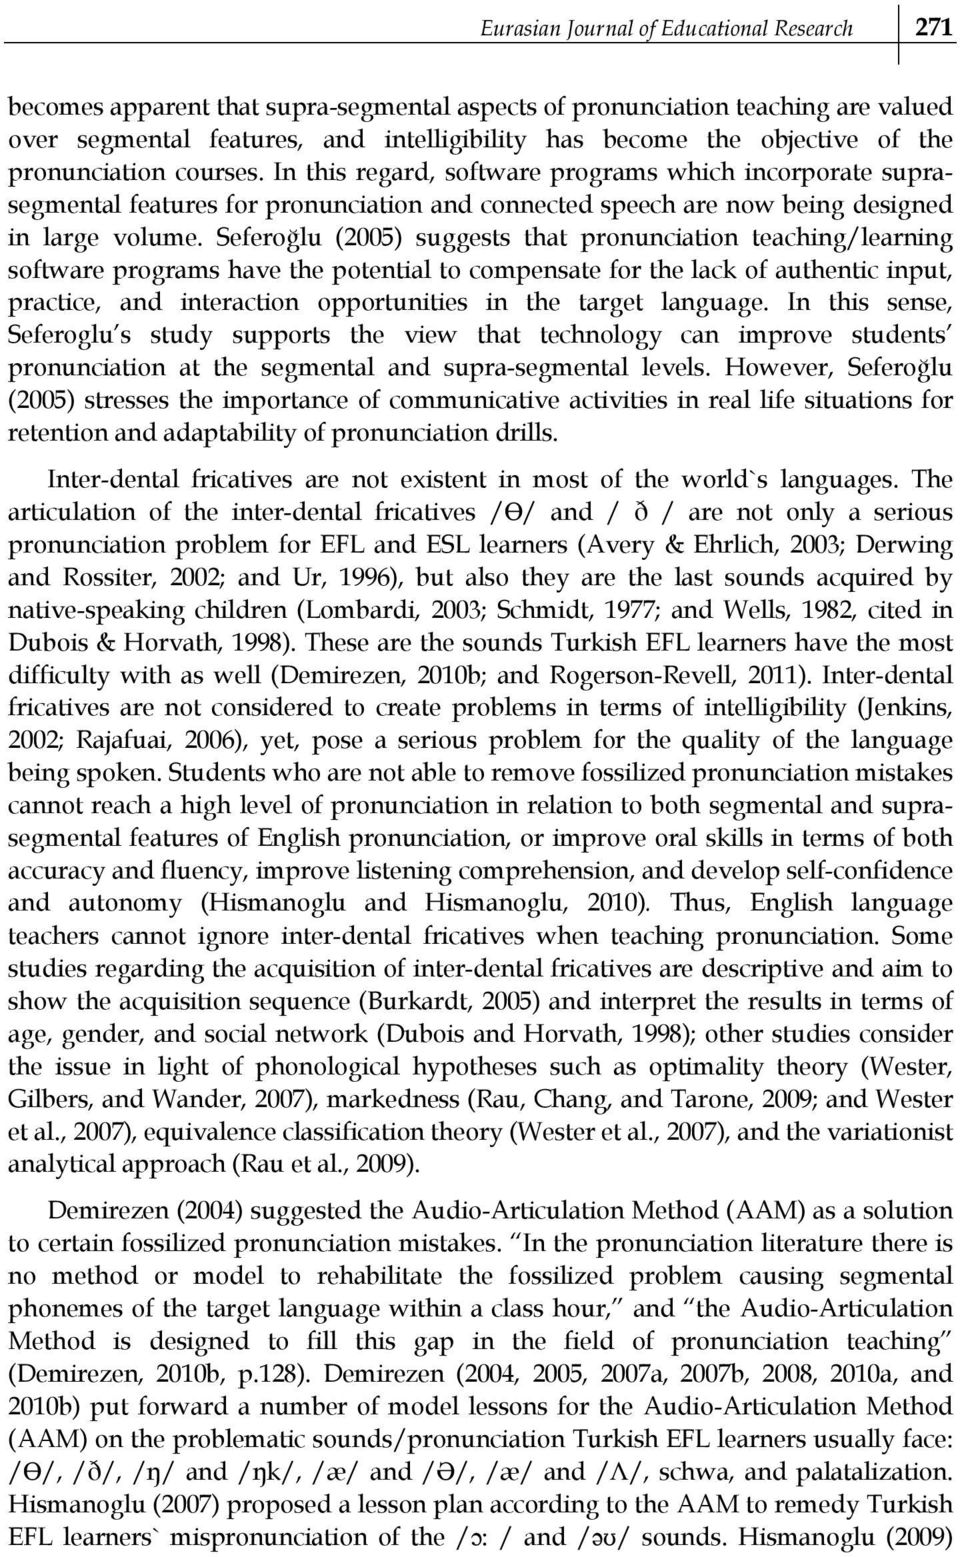 Seferoğlu (5) suggests that pronunciation teaching/learning software programs have the potential to compensate for the lack of authentic input, practice, and interaction opportunities in the target